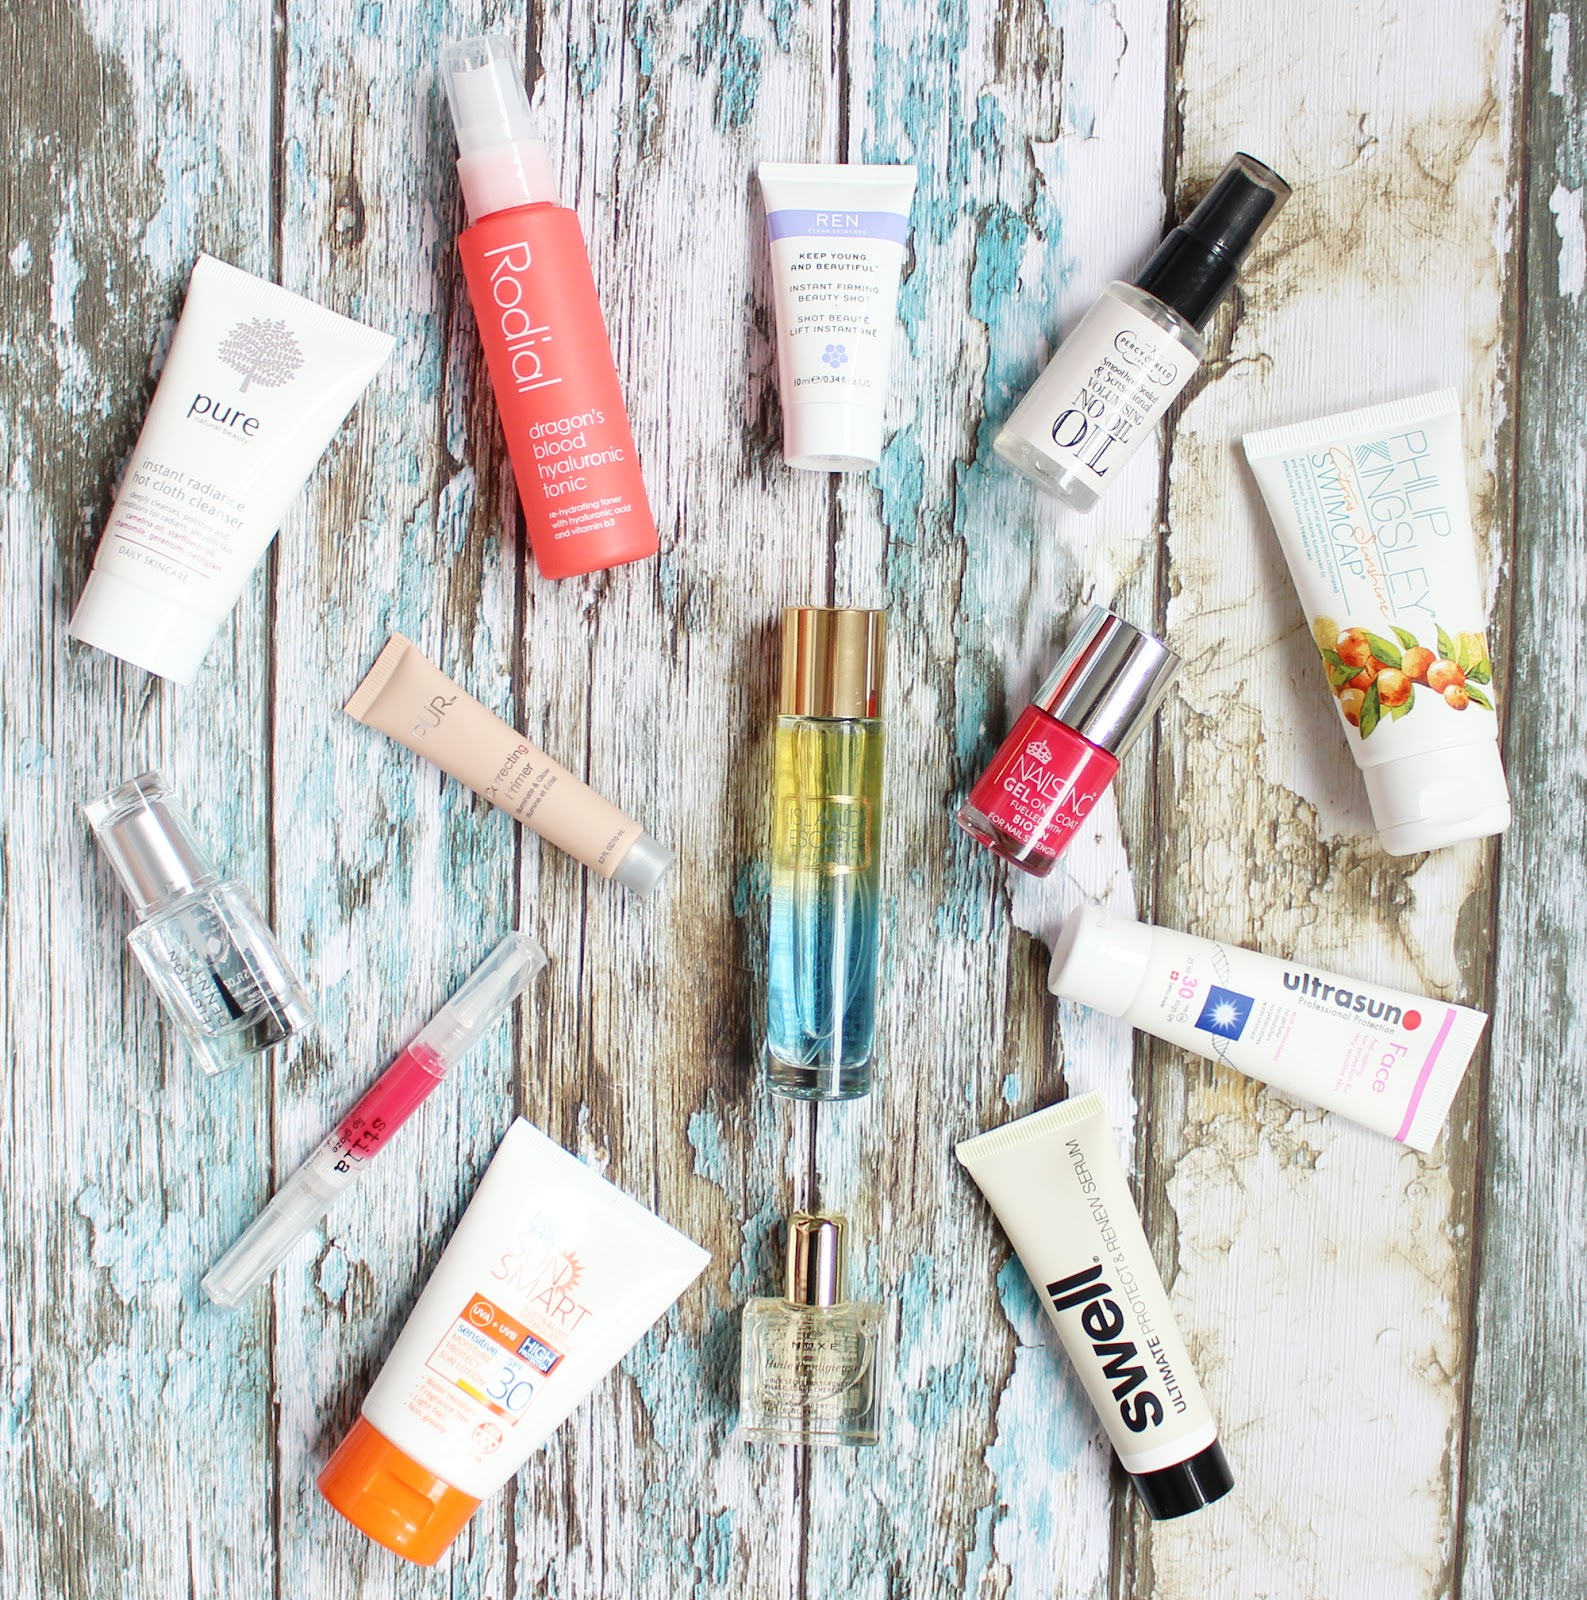 M&S summer beauty box contents and review